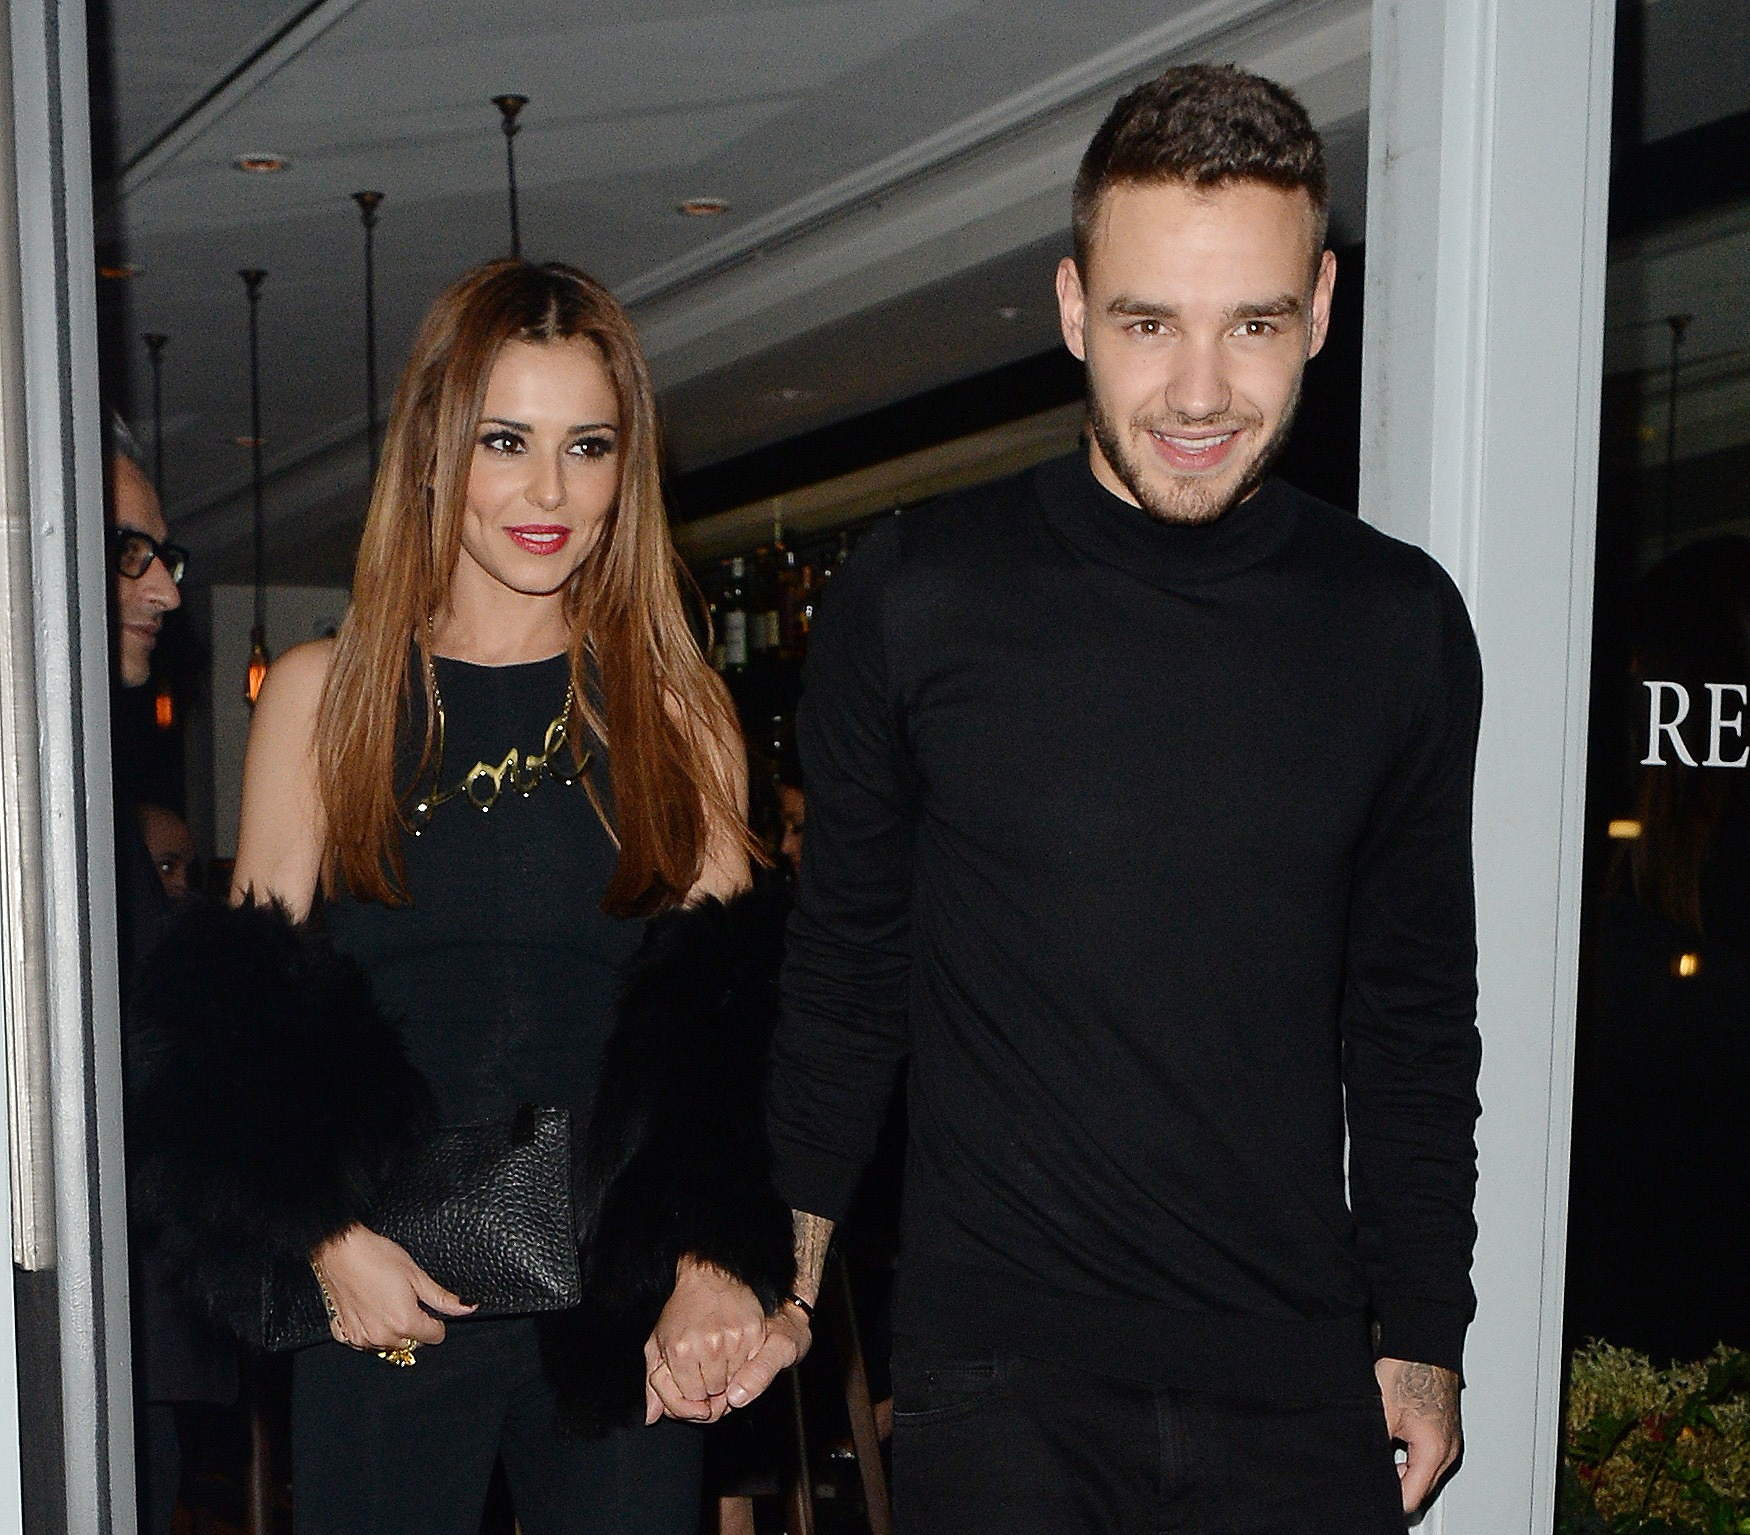 Liam Payne reveals rows with Cheryl and mocks her 'morning voice'